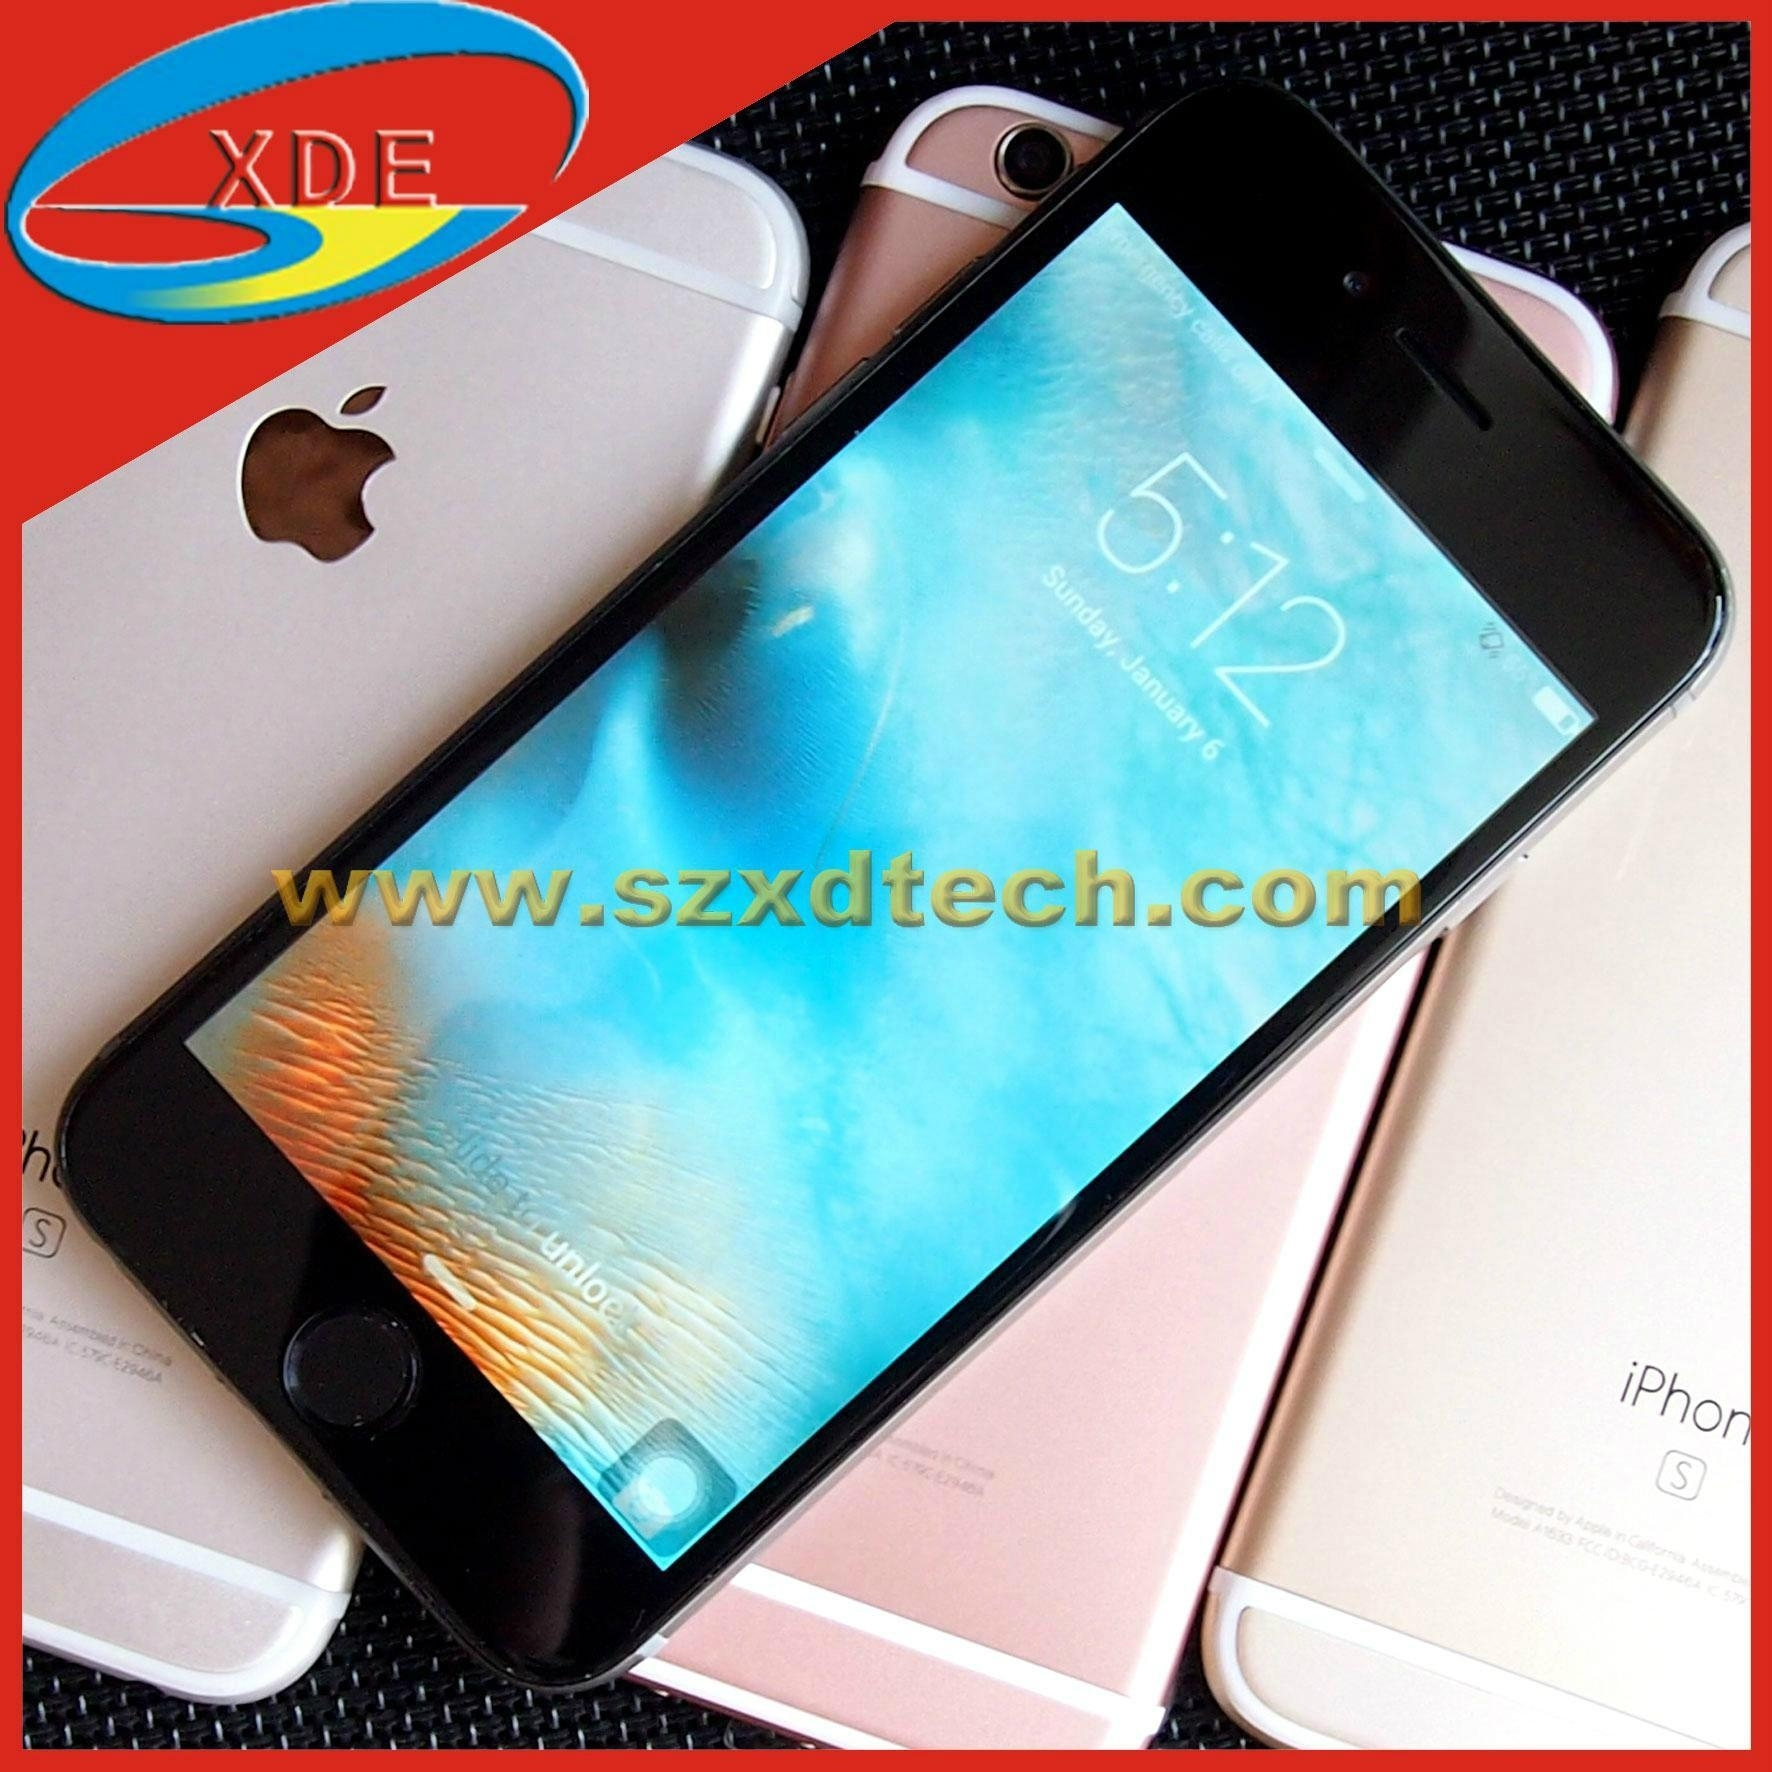 Cheapest iPhone 6 Replica 4.7 Inch Smart Mobile Phone 3G